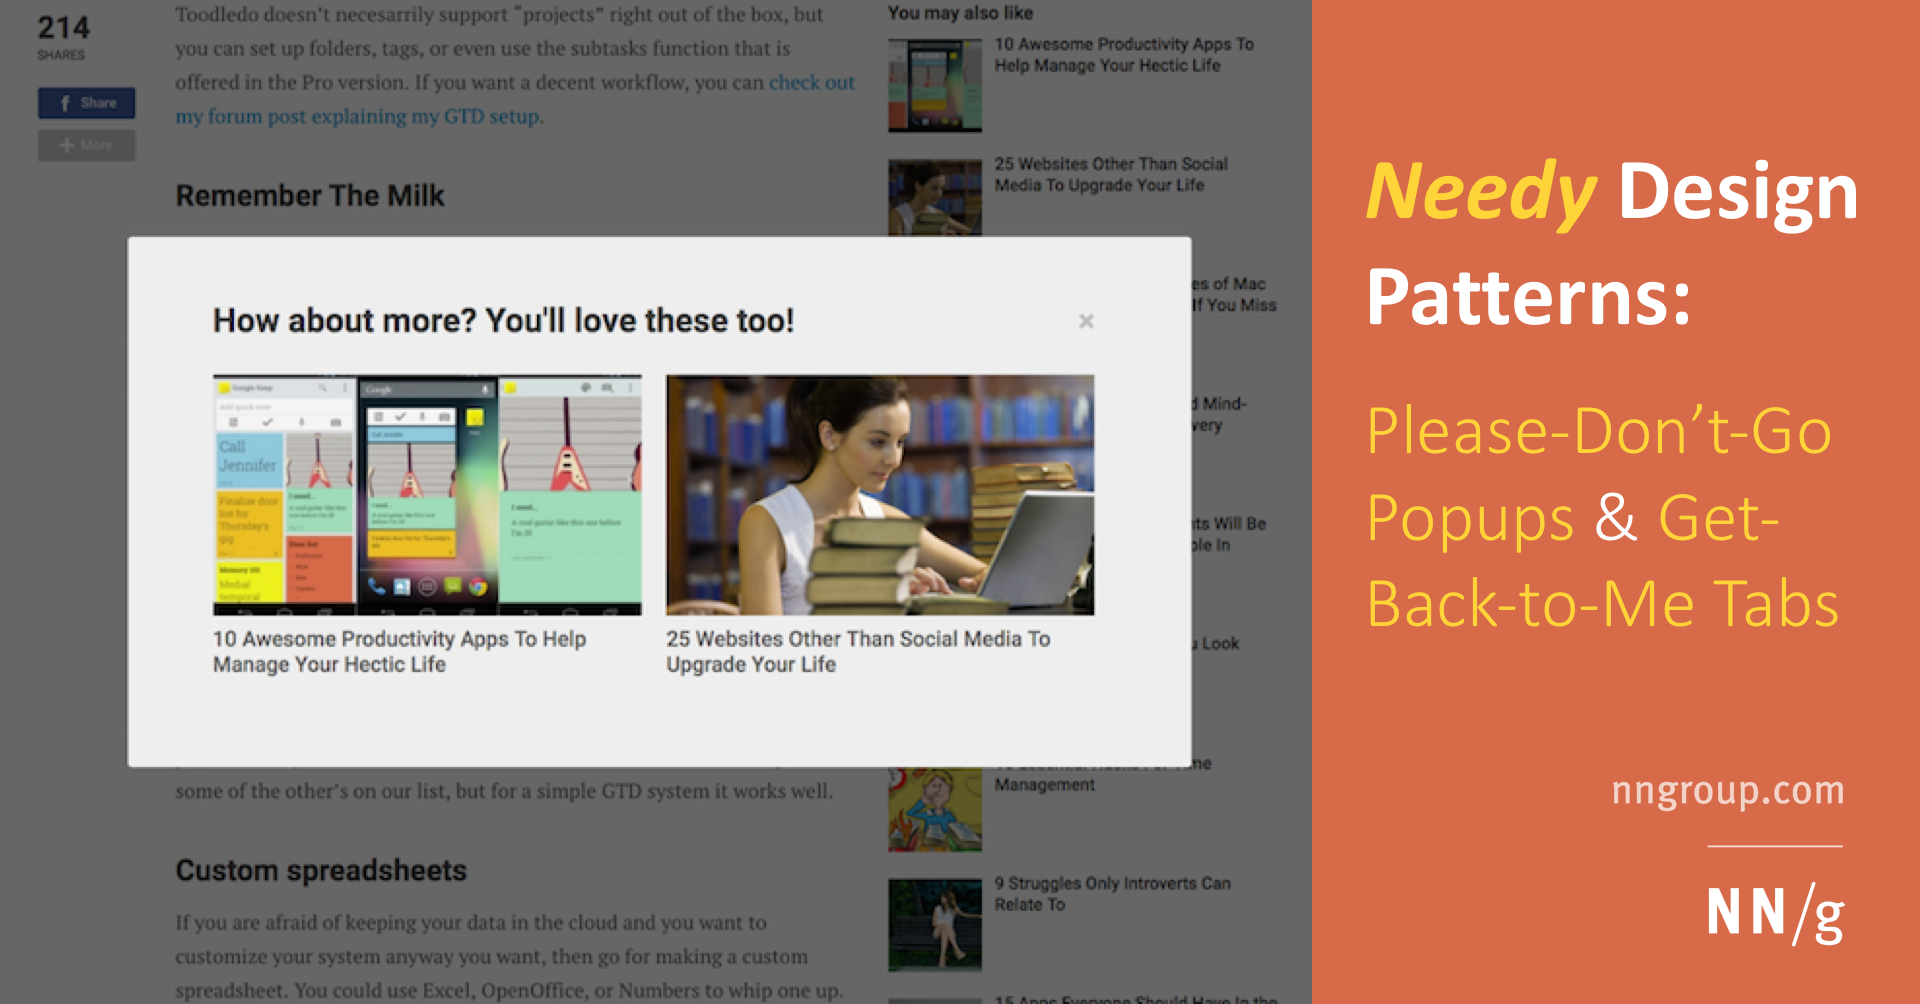 Needy Design Patterns: Please-Don't-Go Popups & Get-Back-to